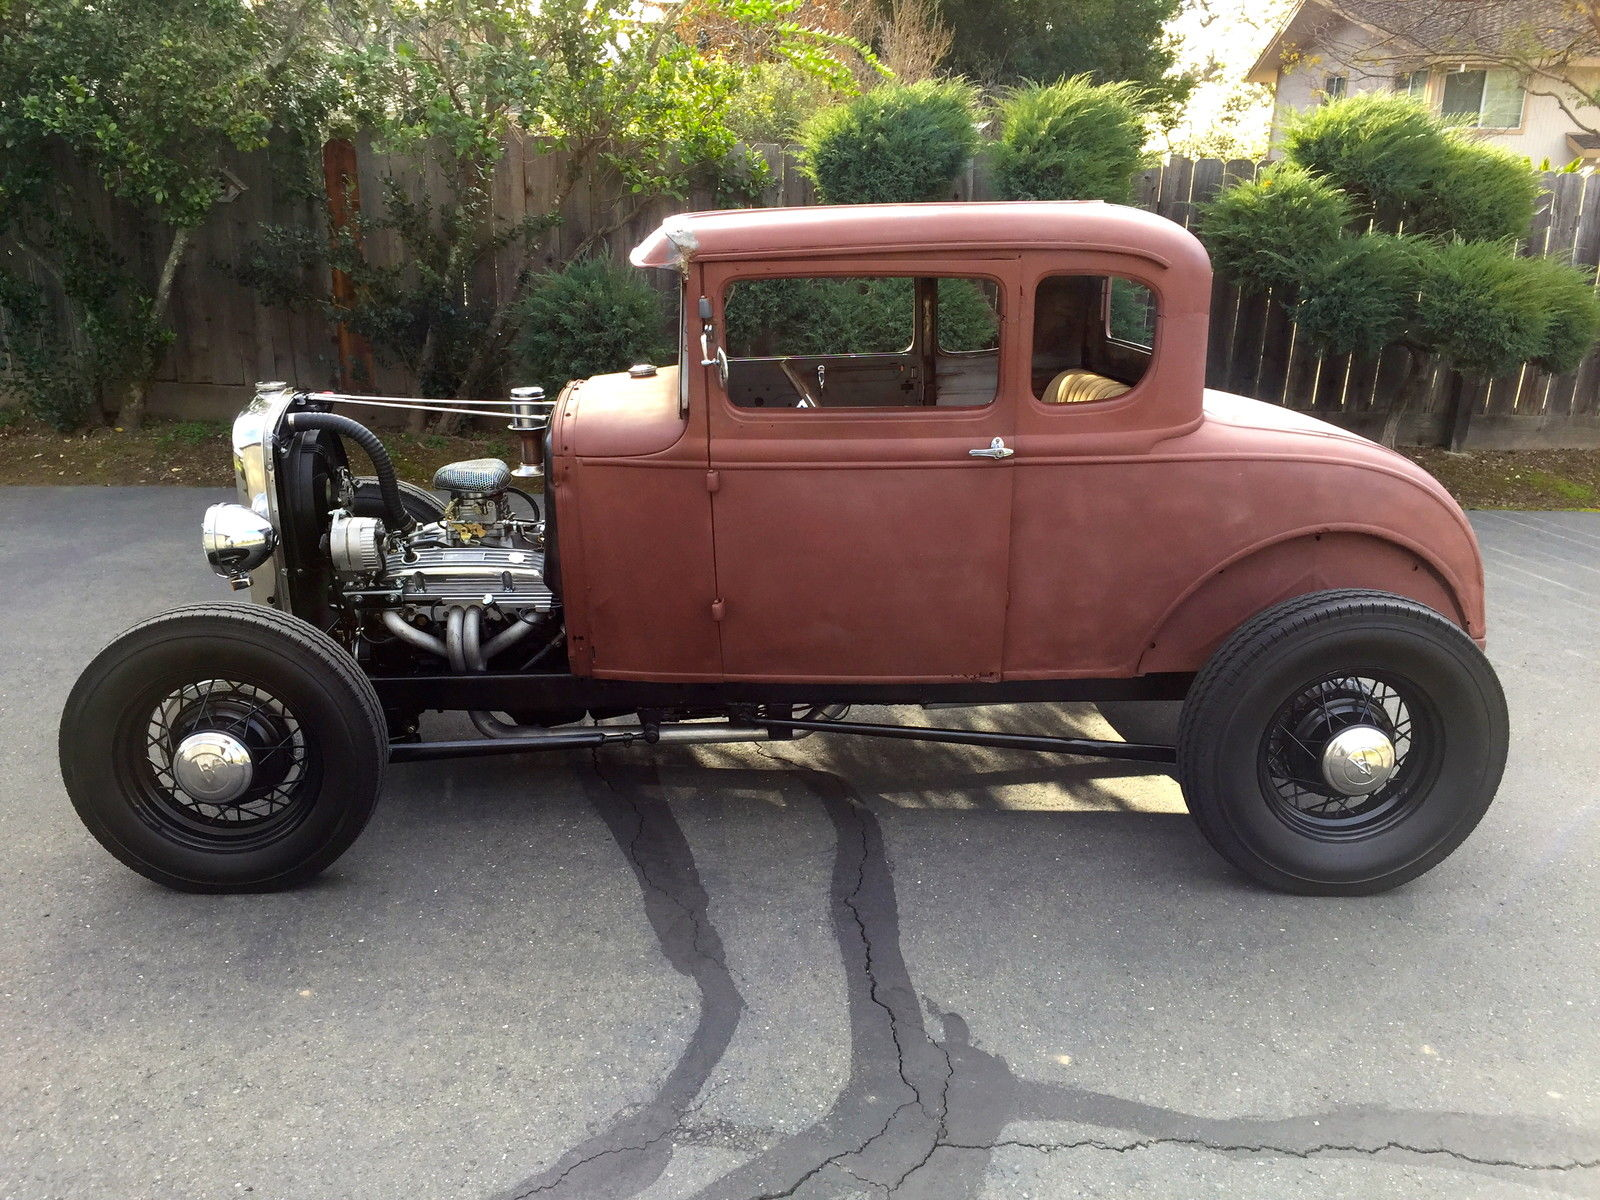 1931 model a vin location  1931  get free image about